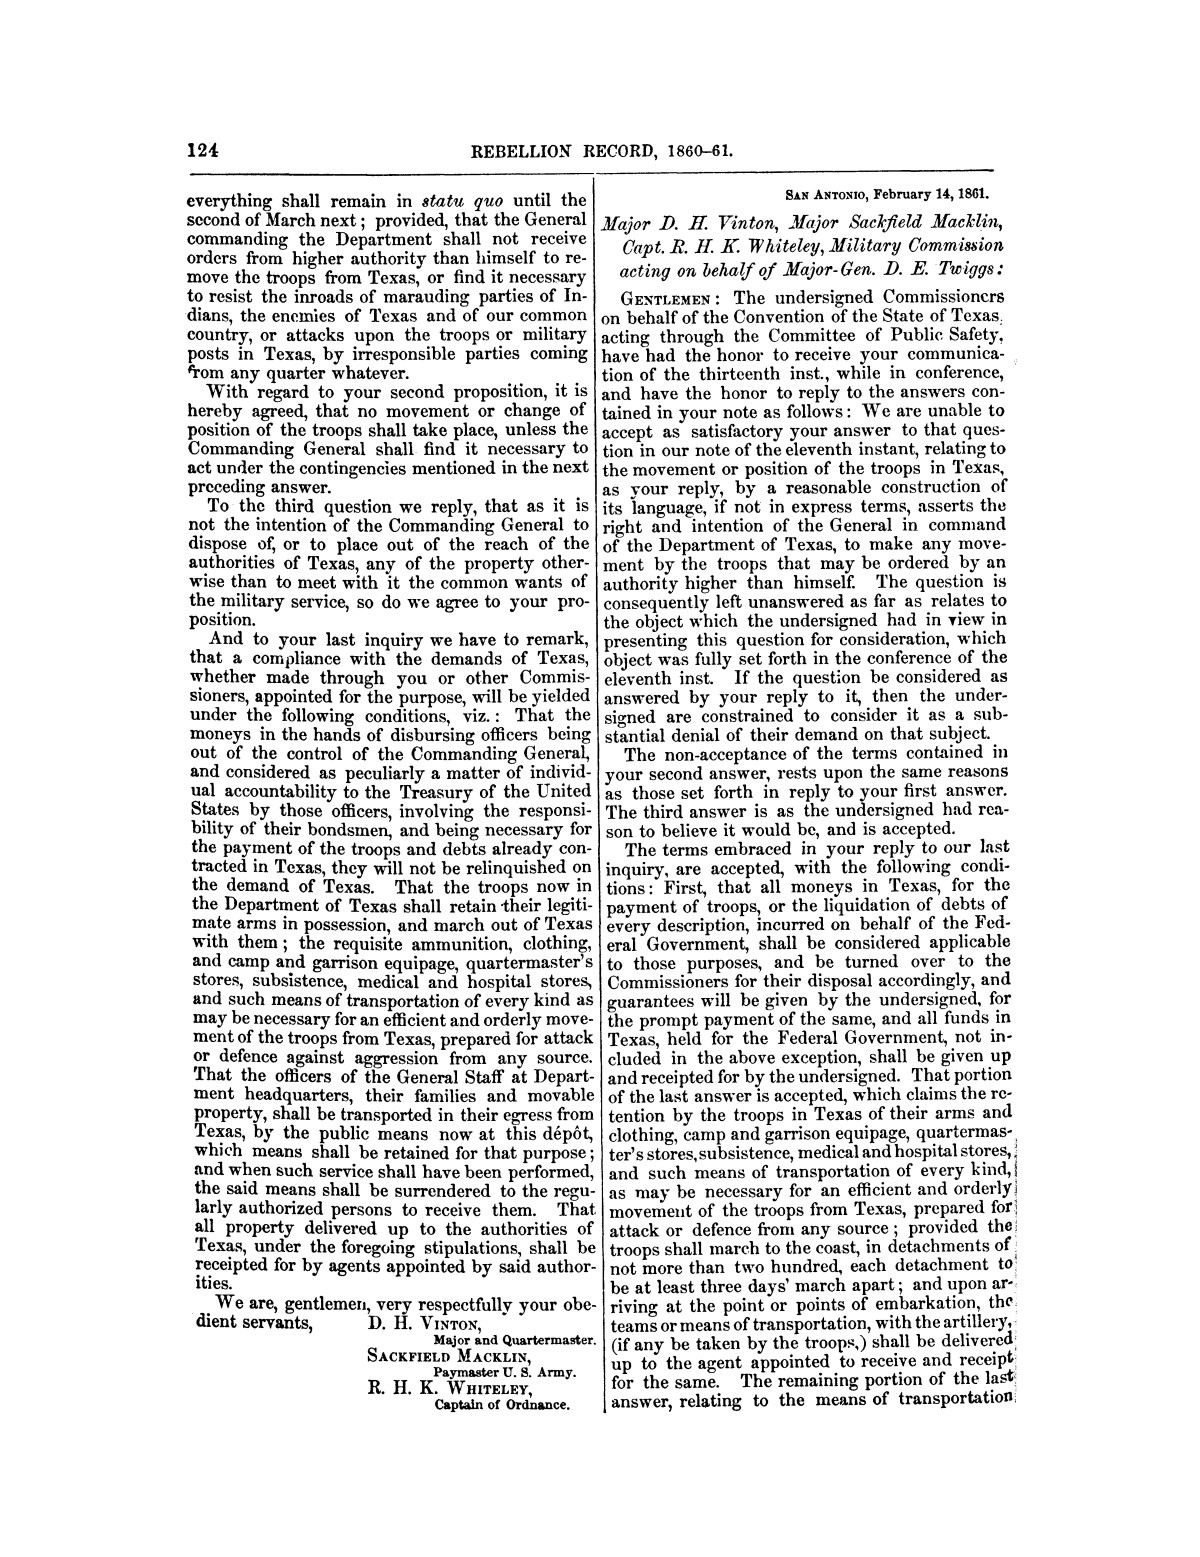 The treachery in Texas, the secession of Texas, and the arrest of the United States officers and soldiers serving in Texas. Read before the New-York Historical Society, June 25, 1861. By Major J. T. Sprague, U. S. A.                                                                                                      [Sequence #]: 18 of 36